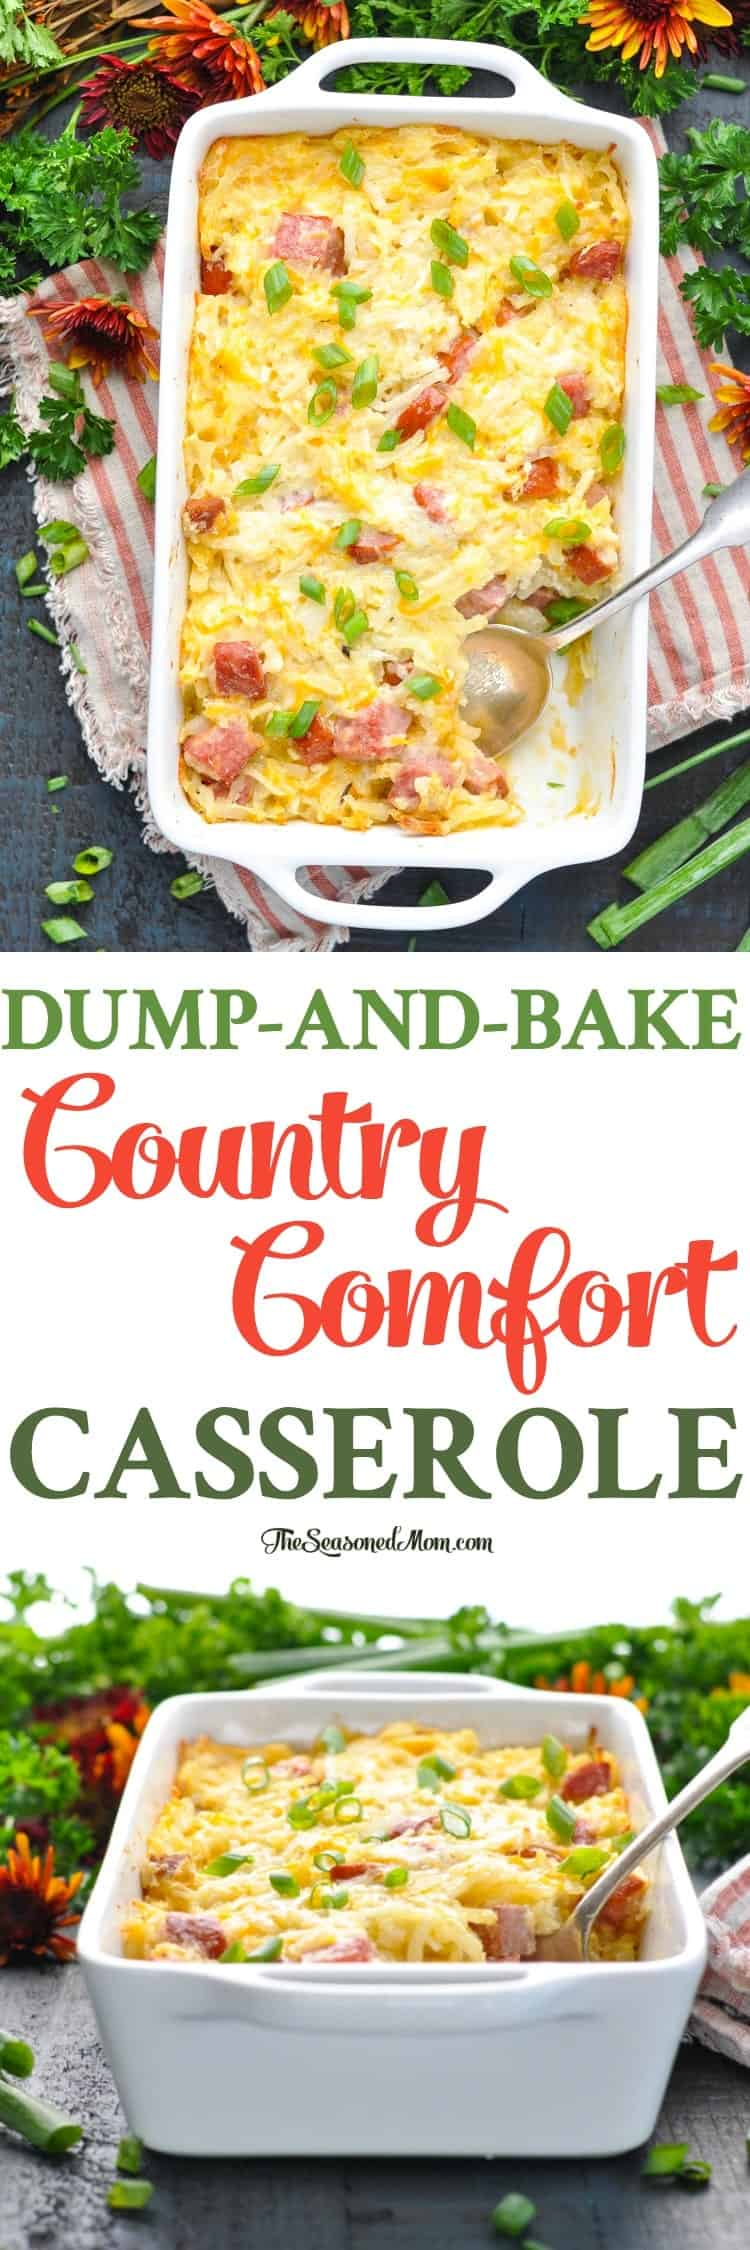 Loaded with hash brown potatoes, cheese, and sausage, this Dump-and-Bake Country Comfort Casserole is a hearty one dish meal that doesn't require any prep work! Easy Dinner Recipes | Sausage Recipes | Hash Brown Casserole #dinner #casserole